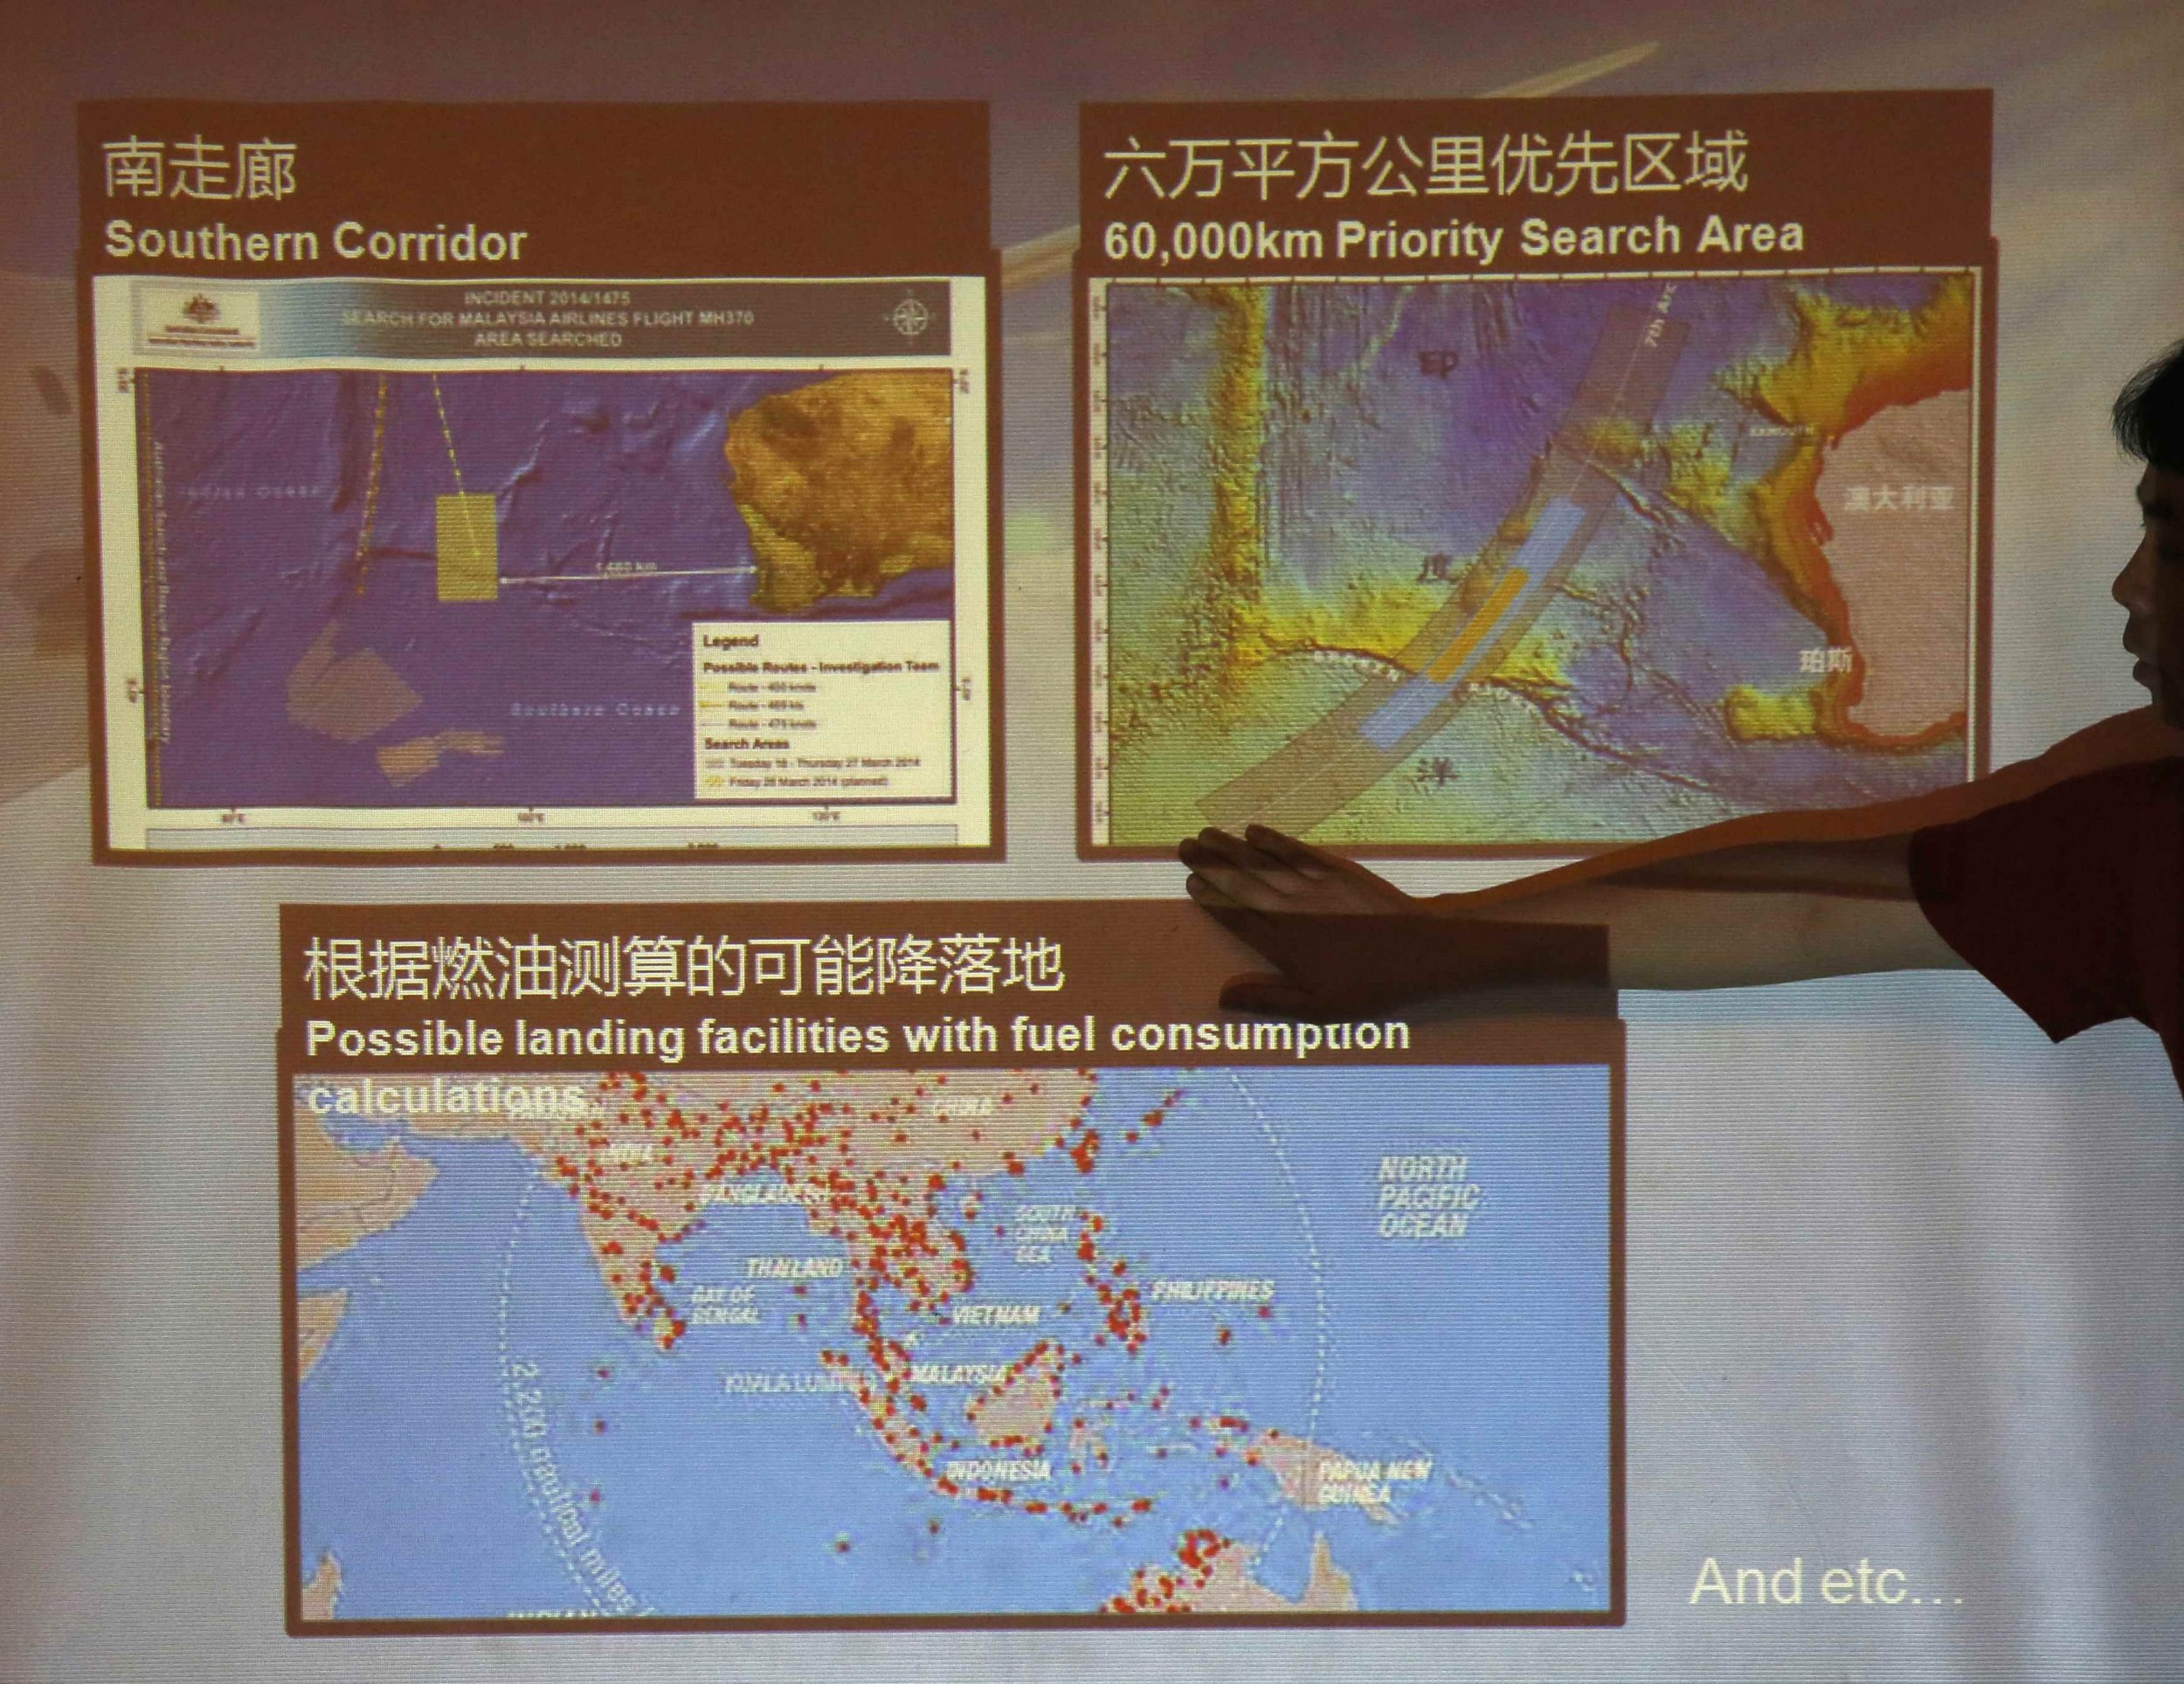 2015-02-20T100659Z_1194484775_GM1EB2K1DXC01_RTRMADP_3_MALAYSIA-AIRLINE-MH370-RELATIVES